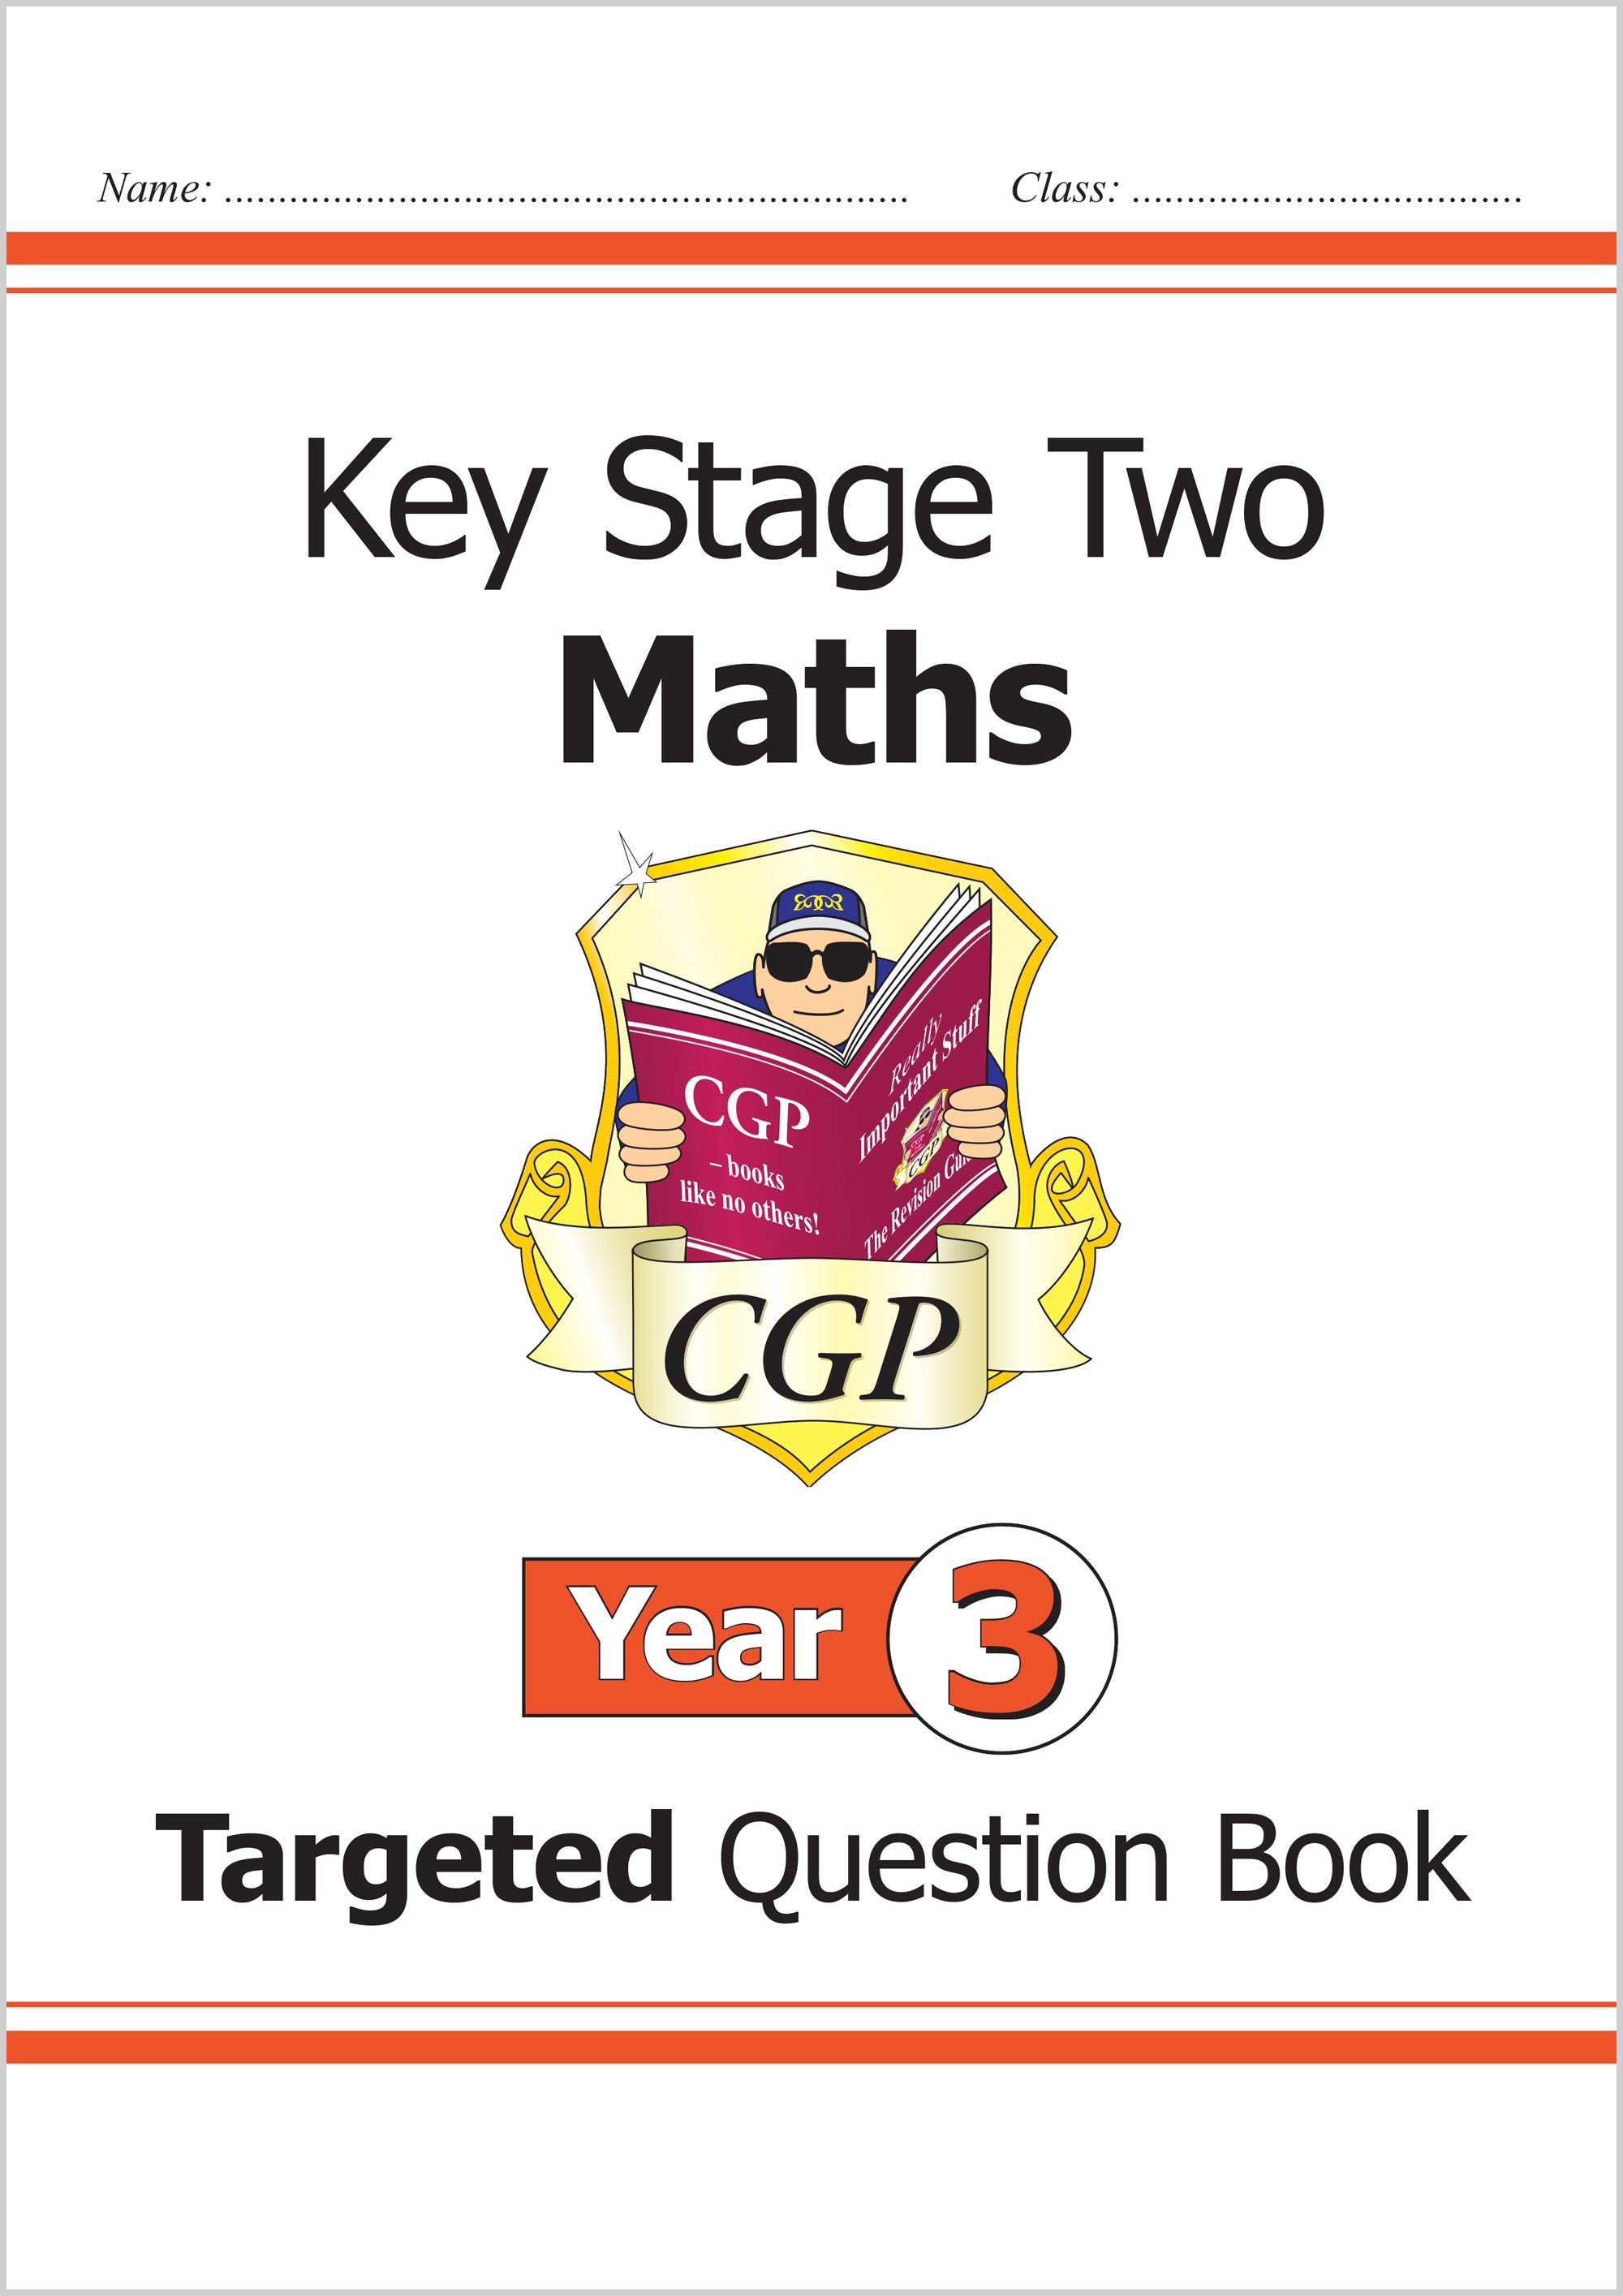 M3Q24 - KS2 Maths Targeted Question Book - Year 3